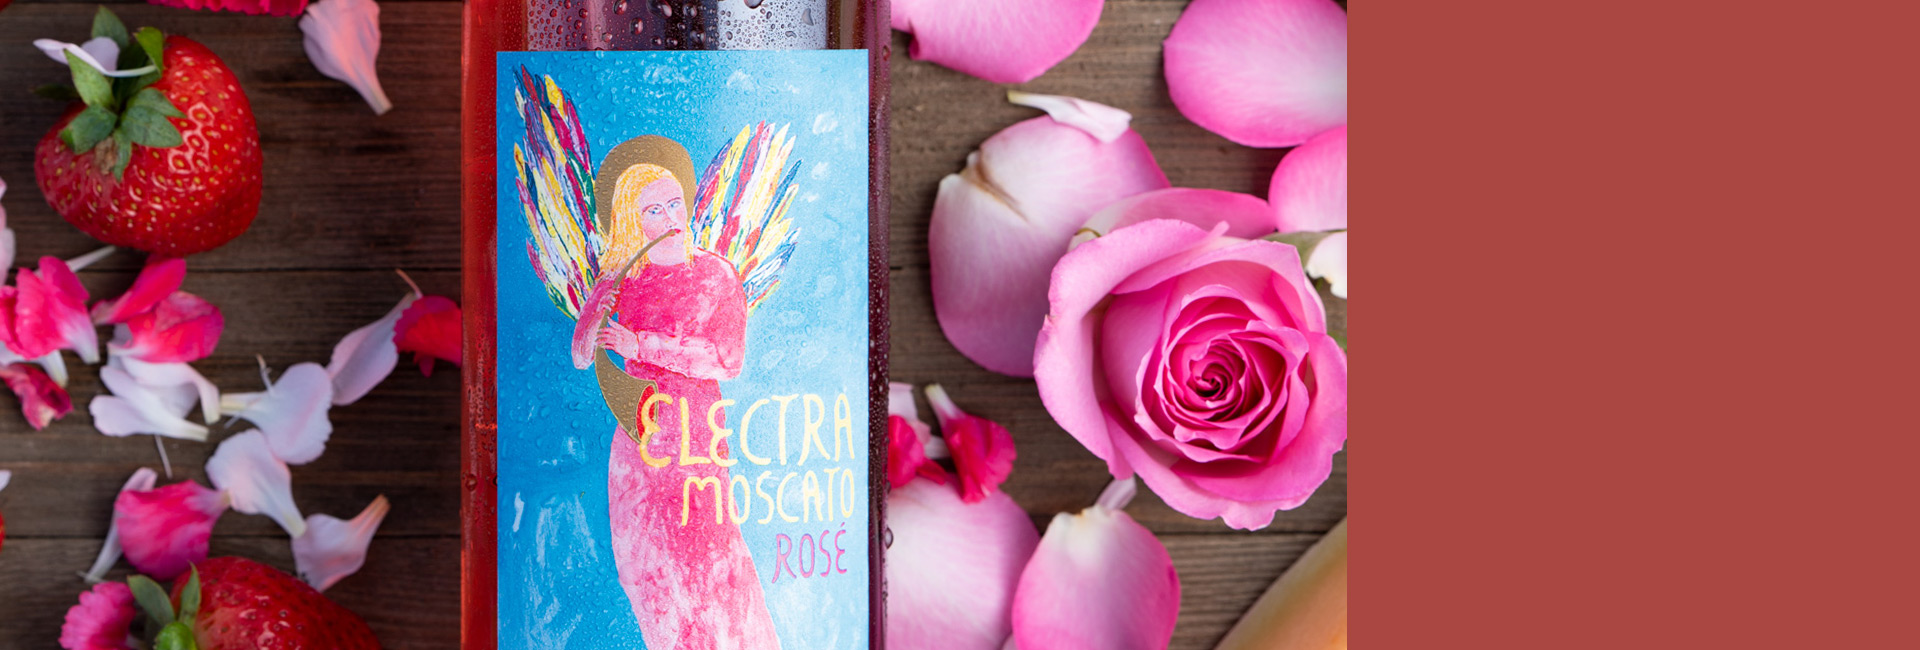 Header image close up of the new Electra Moscato Rosé surrounded by flowers, roses, strawberries and melon.